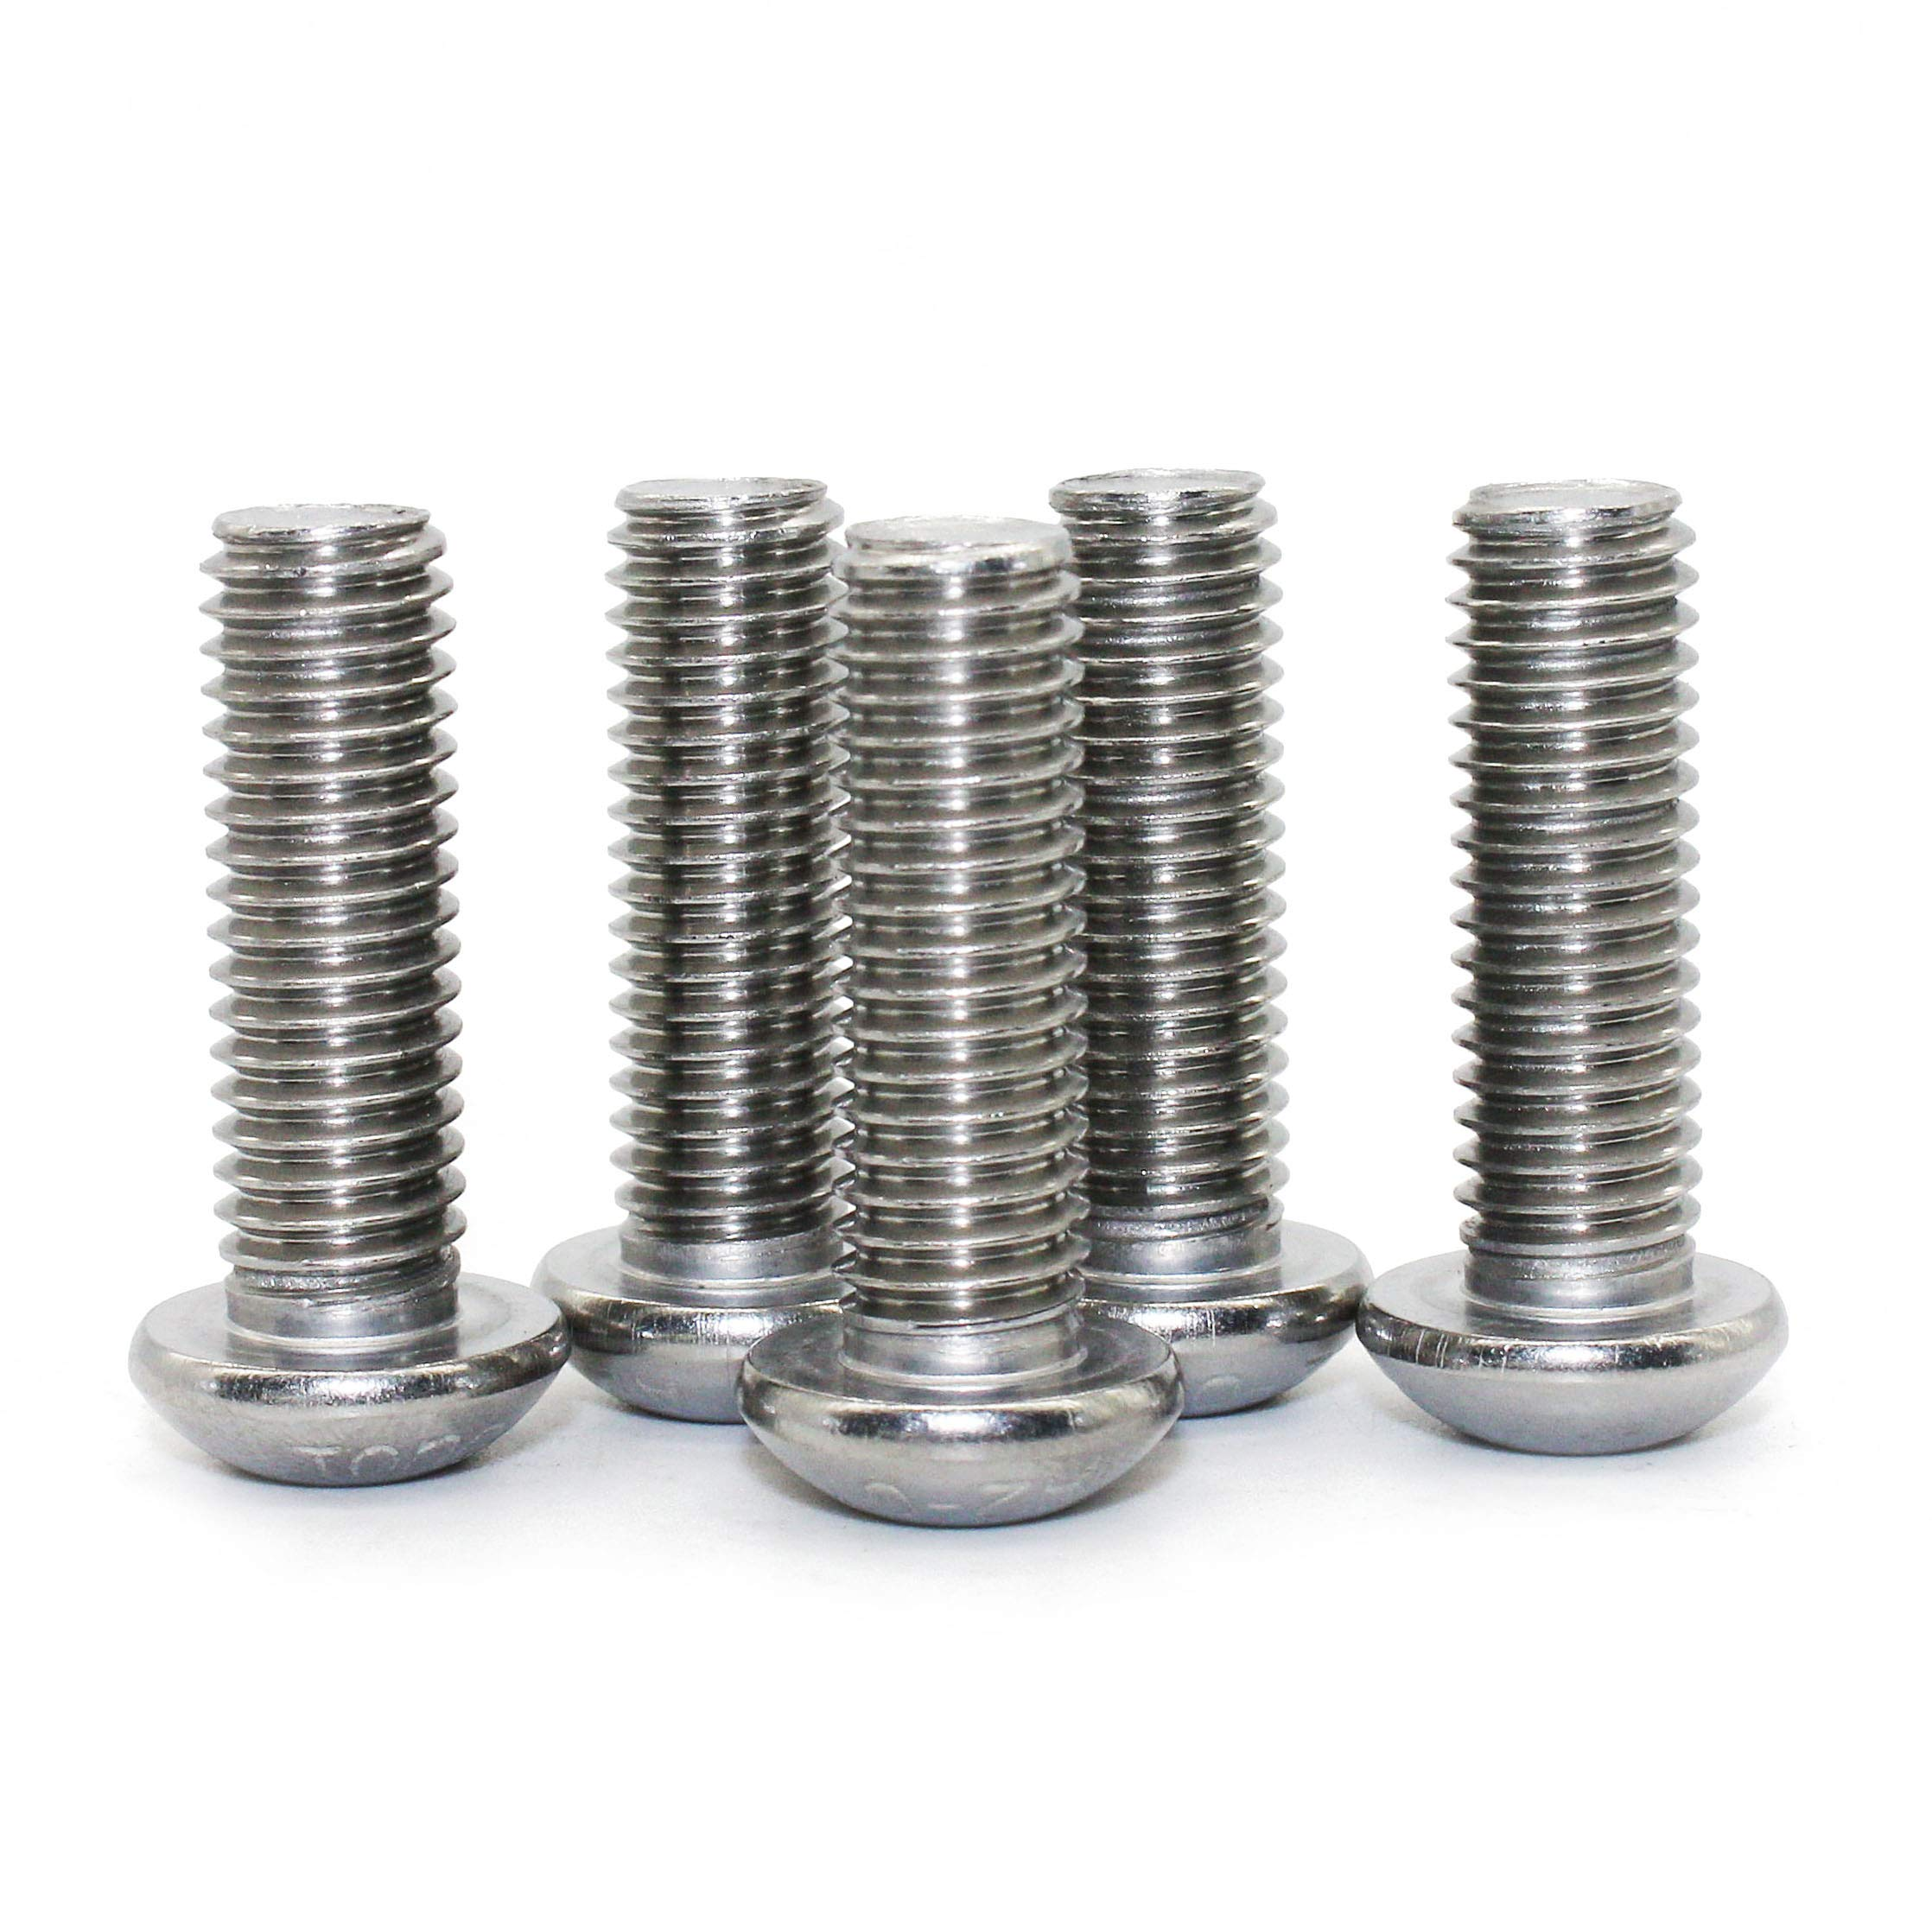 M5-0.8 x 20 mm Button Head Socket Cap Screws, Quantity 50 by Fullerkreg, Allen Socket Drive, Passivated 18-8 Stainless Steel, ISO7380, Come in a Plastic Case